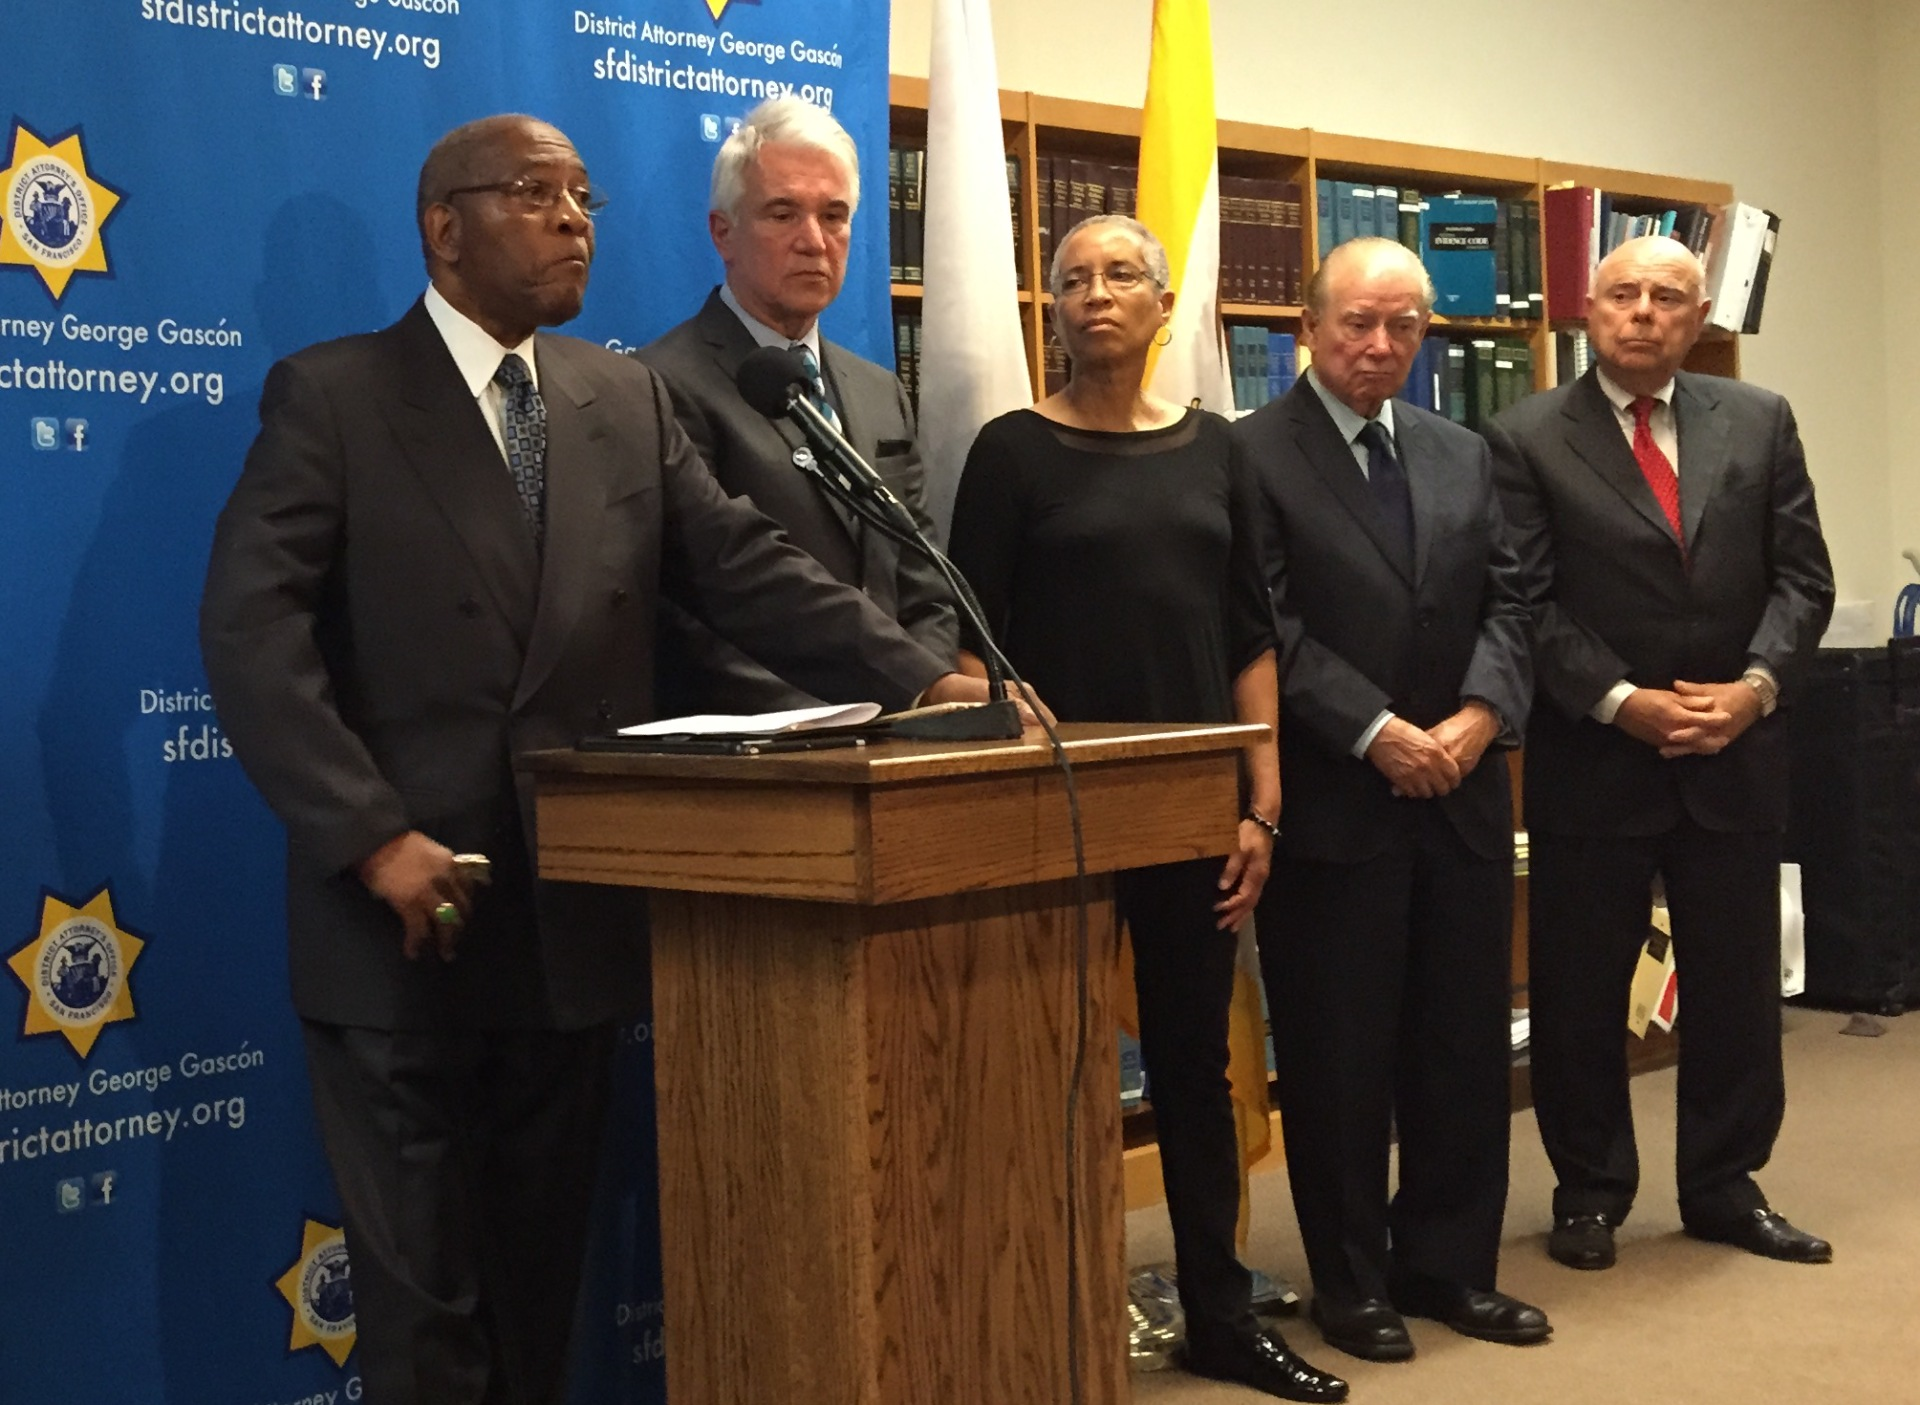 The Rev. Amos Brown speaks about the probe into racist text messages sent by current and former SFPD officers with DA George Gascón and retired judges LaDoris Cordell, Cruz Reynoso and Dickran Tevrizian.